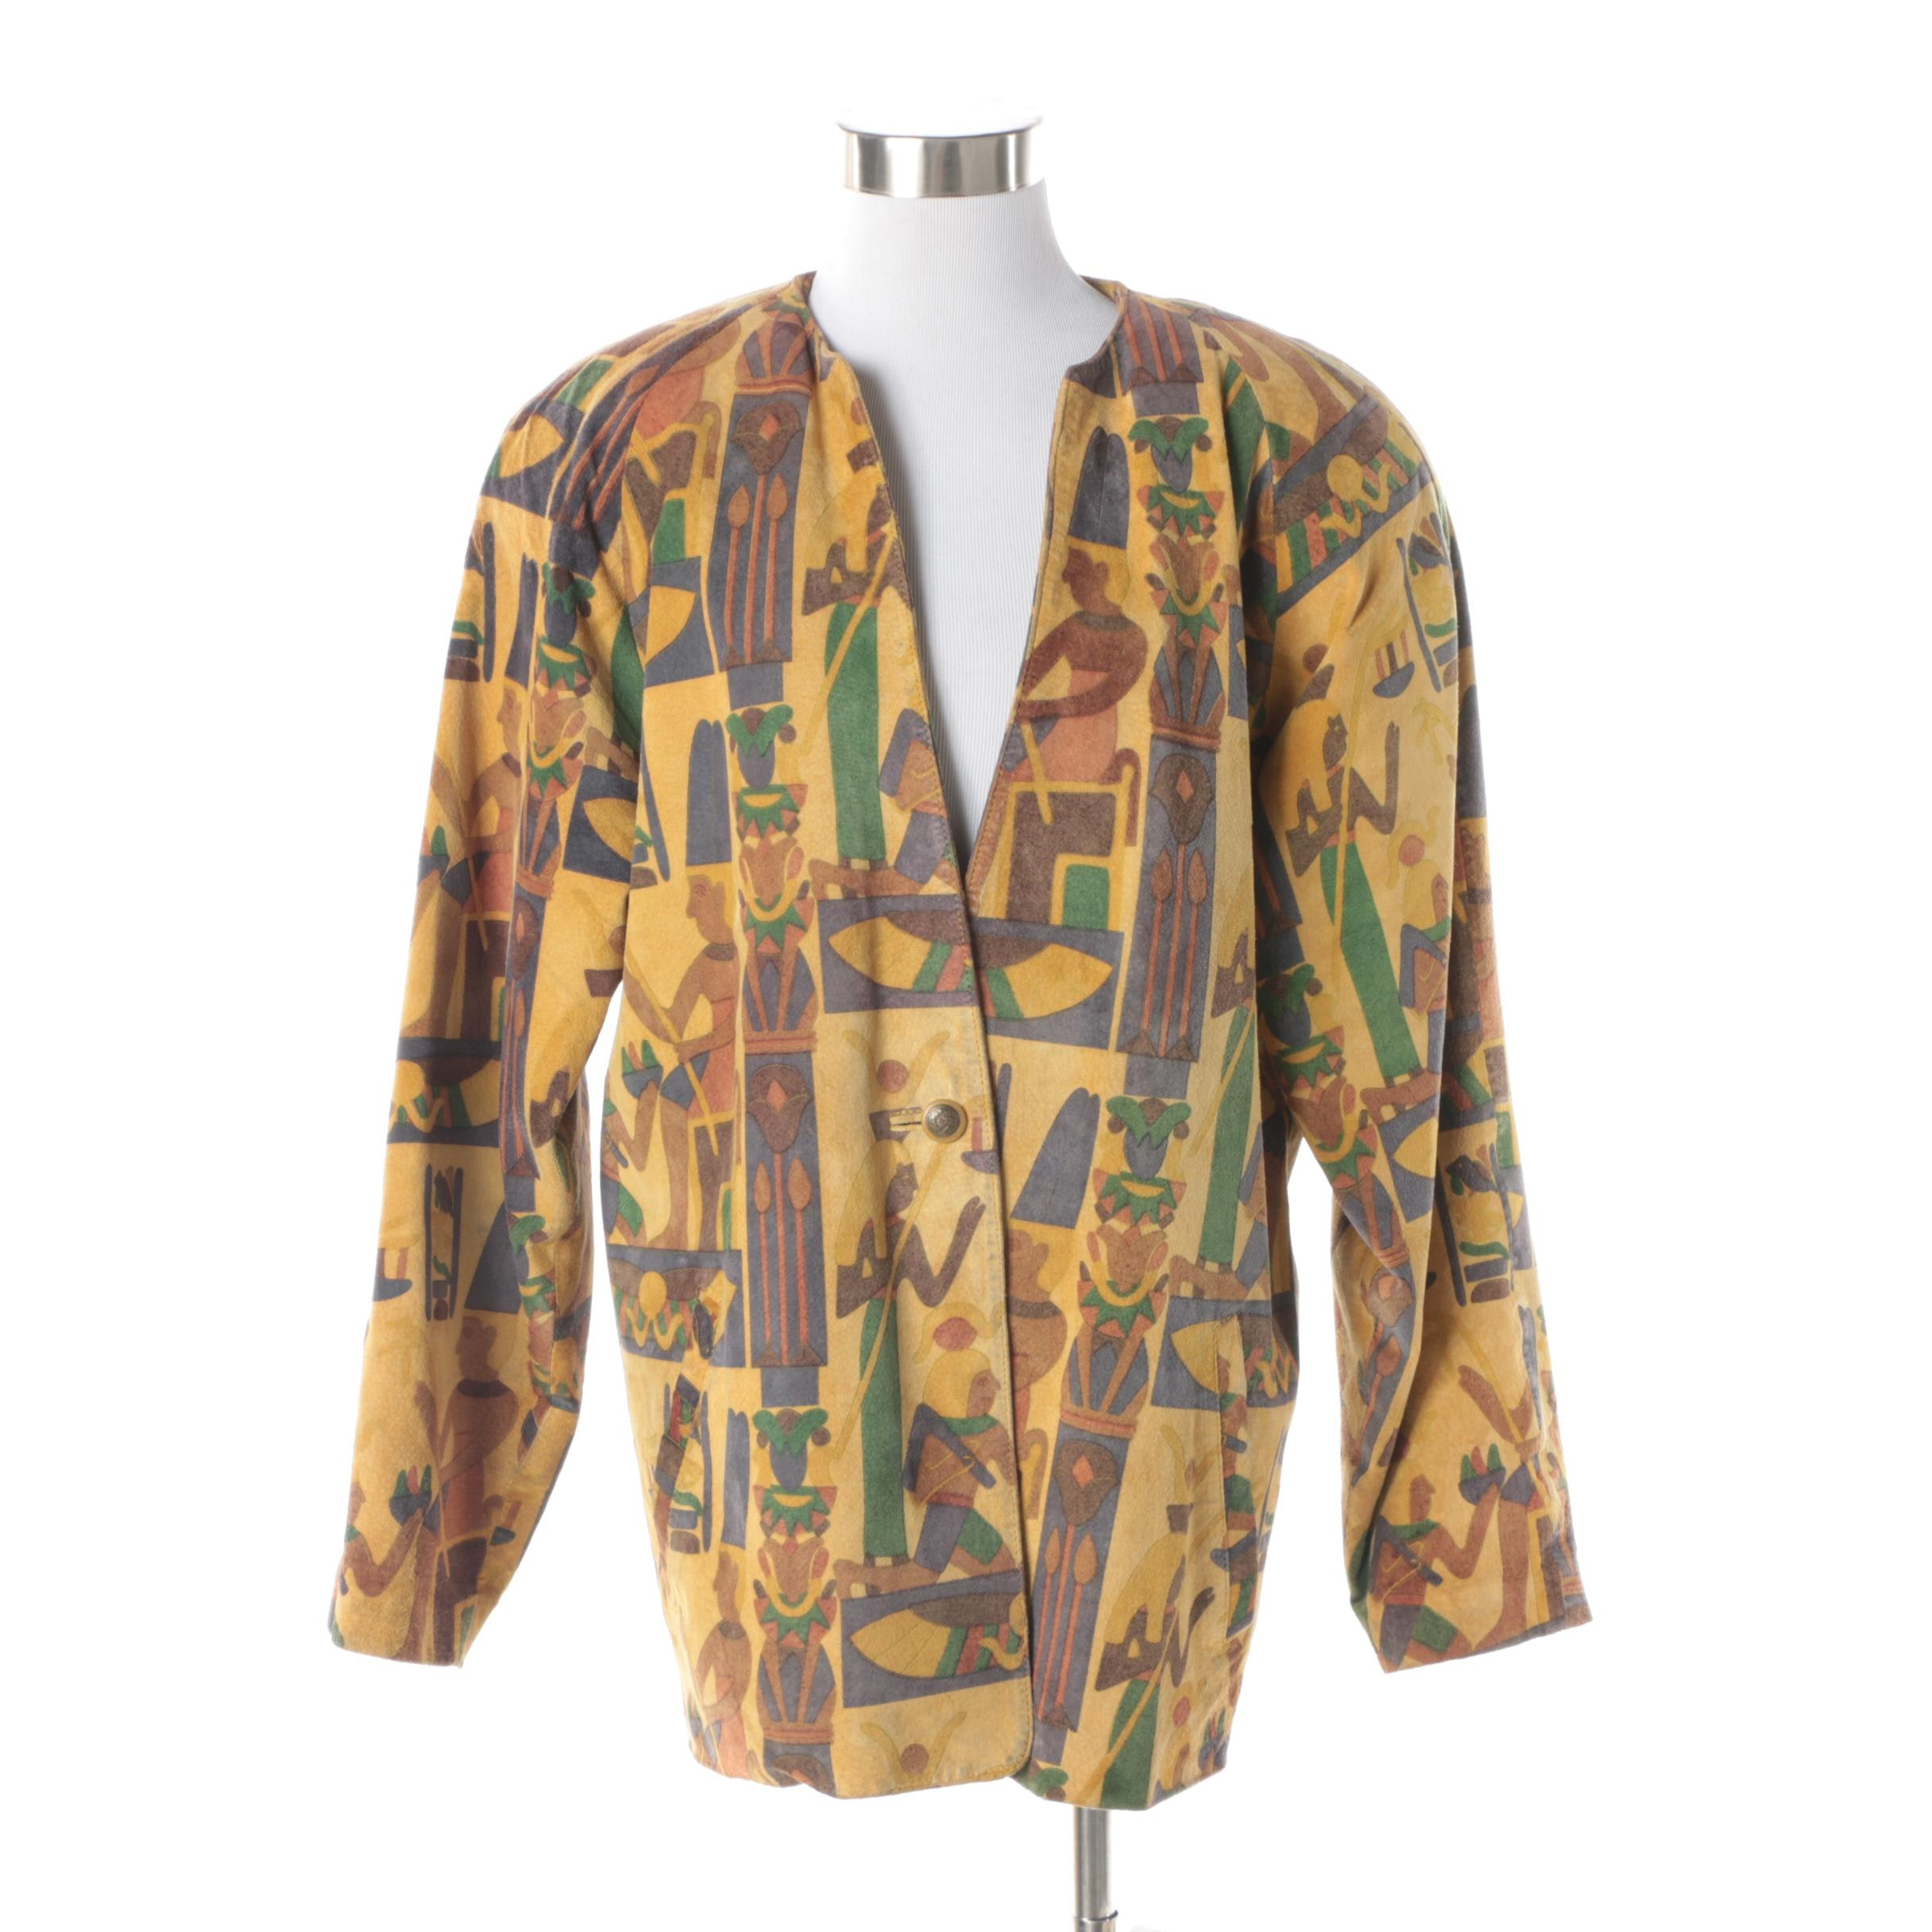 Women's 1990s Cayenne Multicolored Egyptian Print Suede Jacket